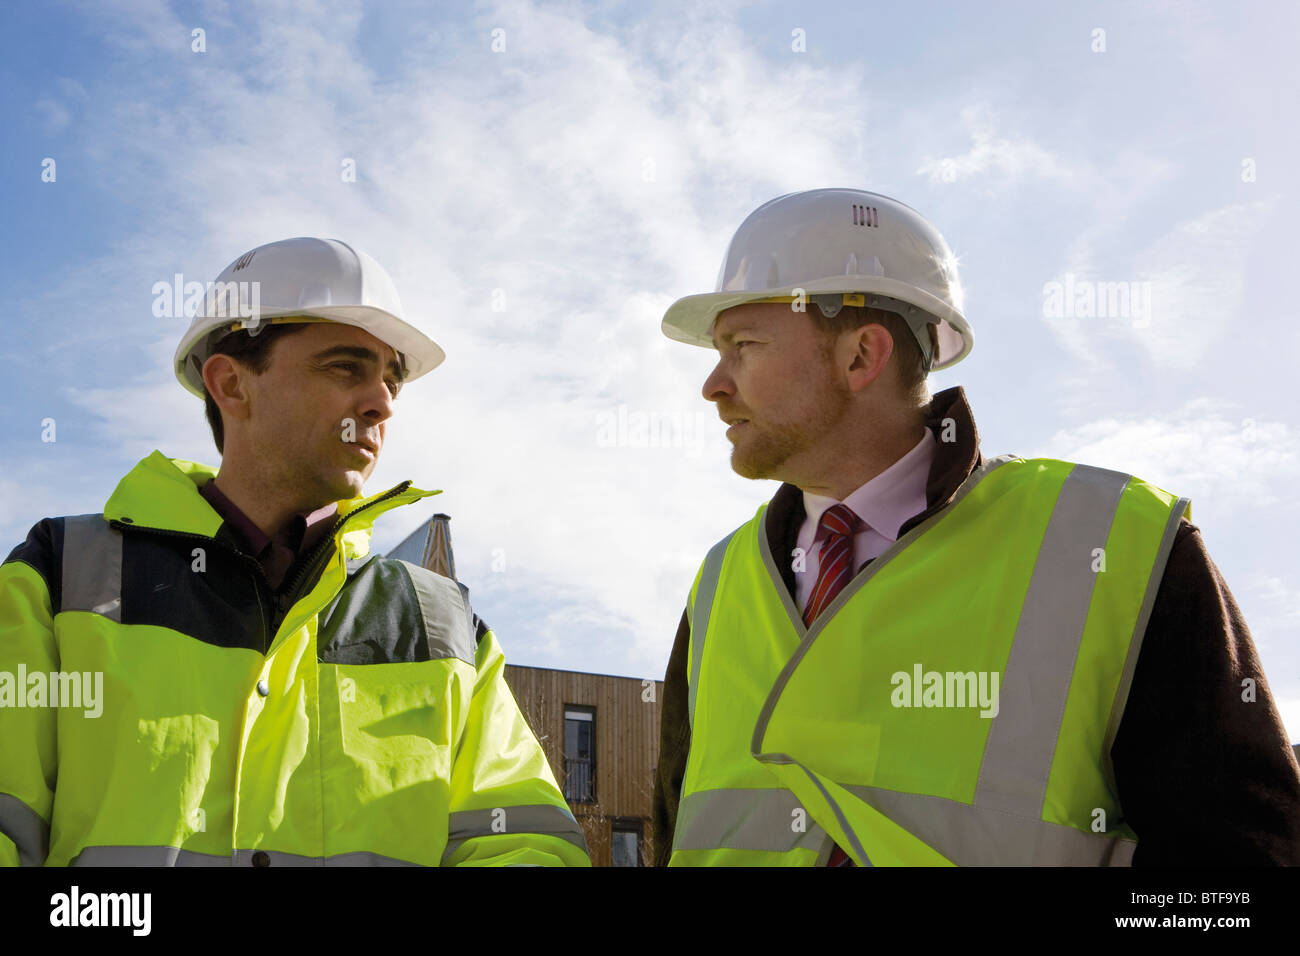 Building contractor and businessman in hard hat and reflective clothing - Stock Image